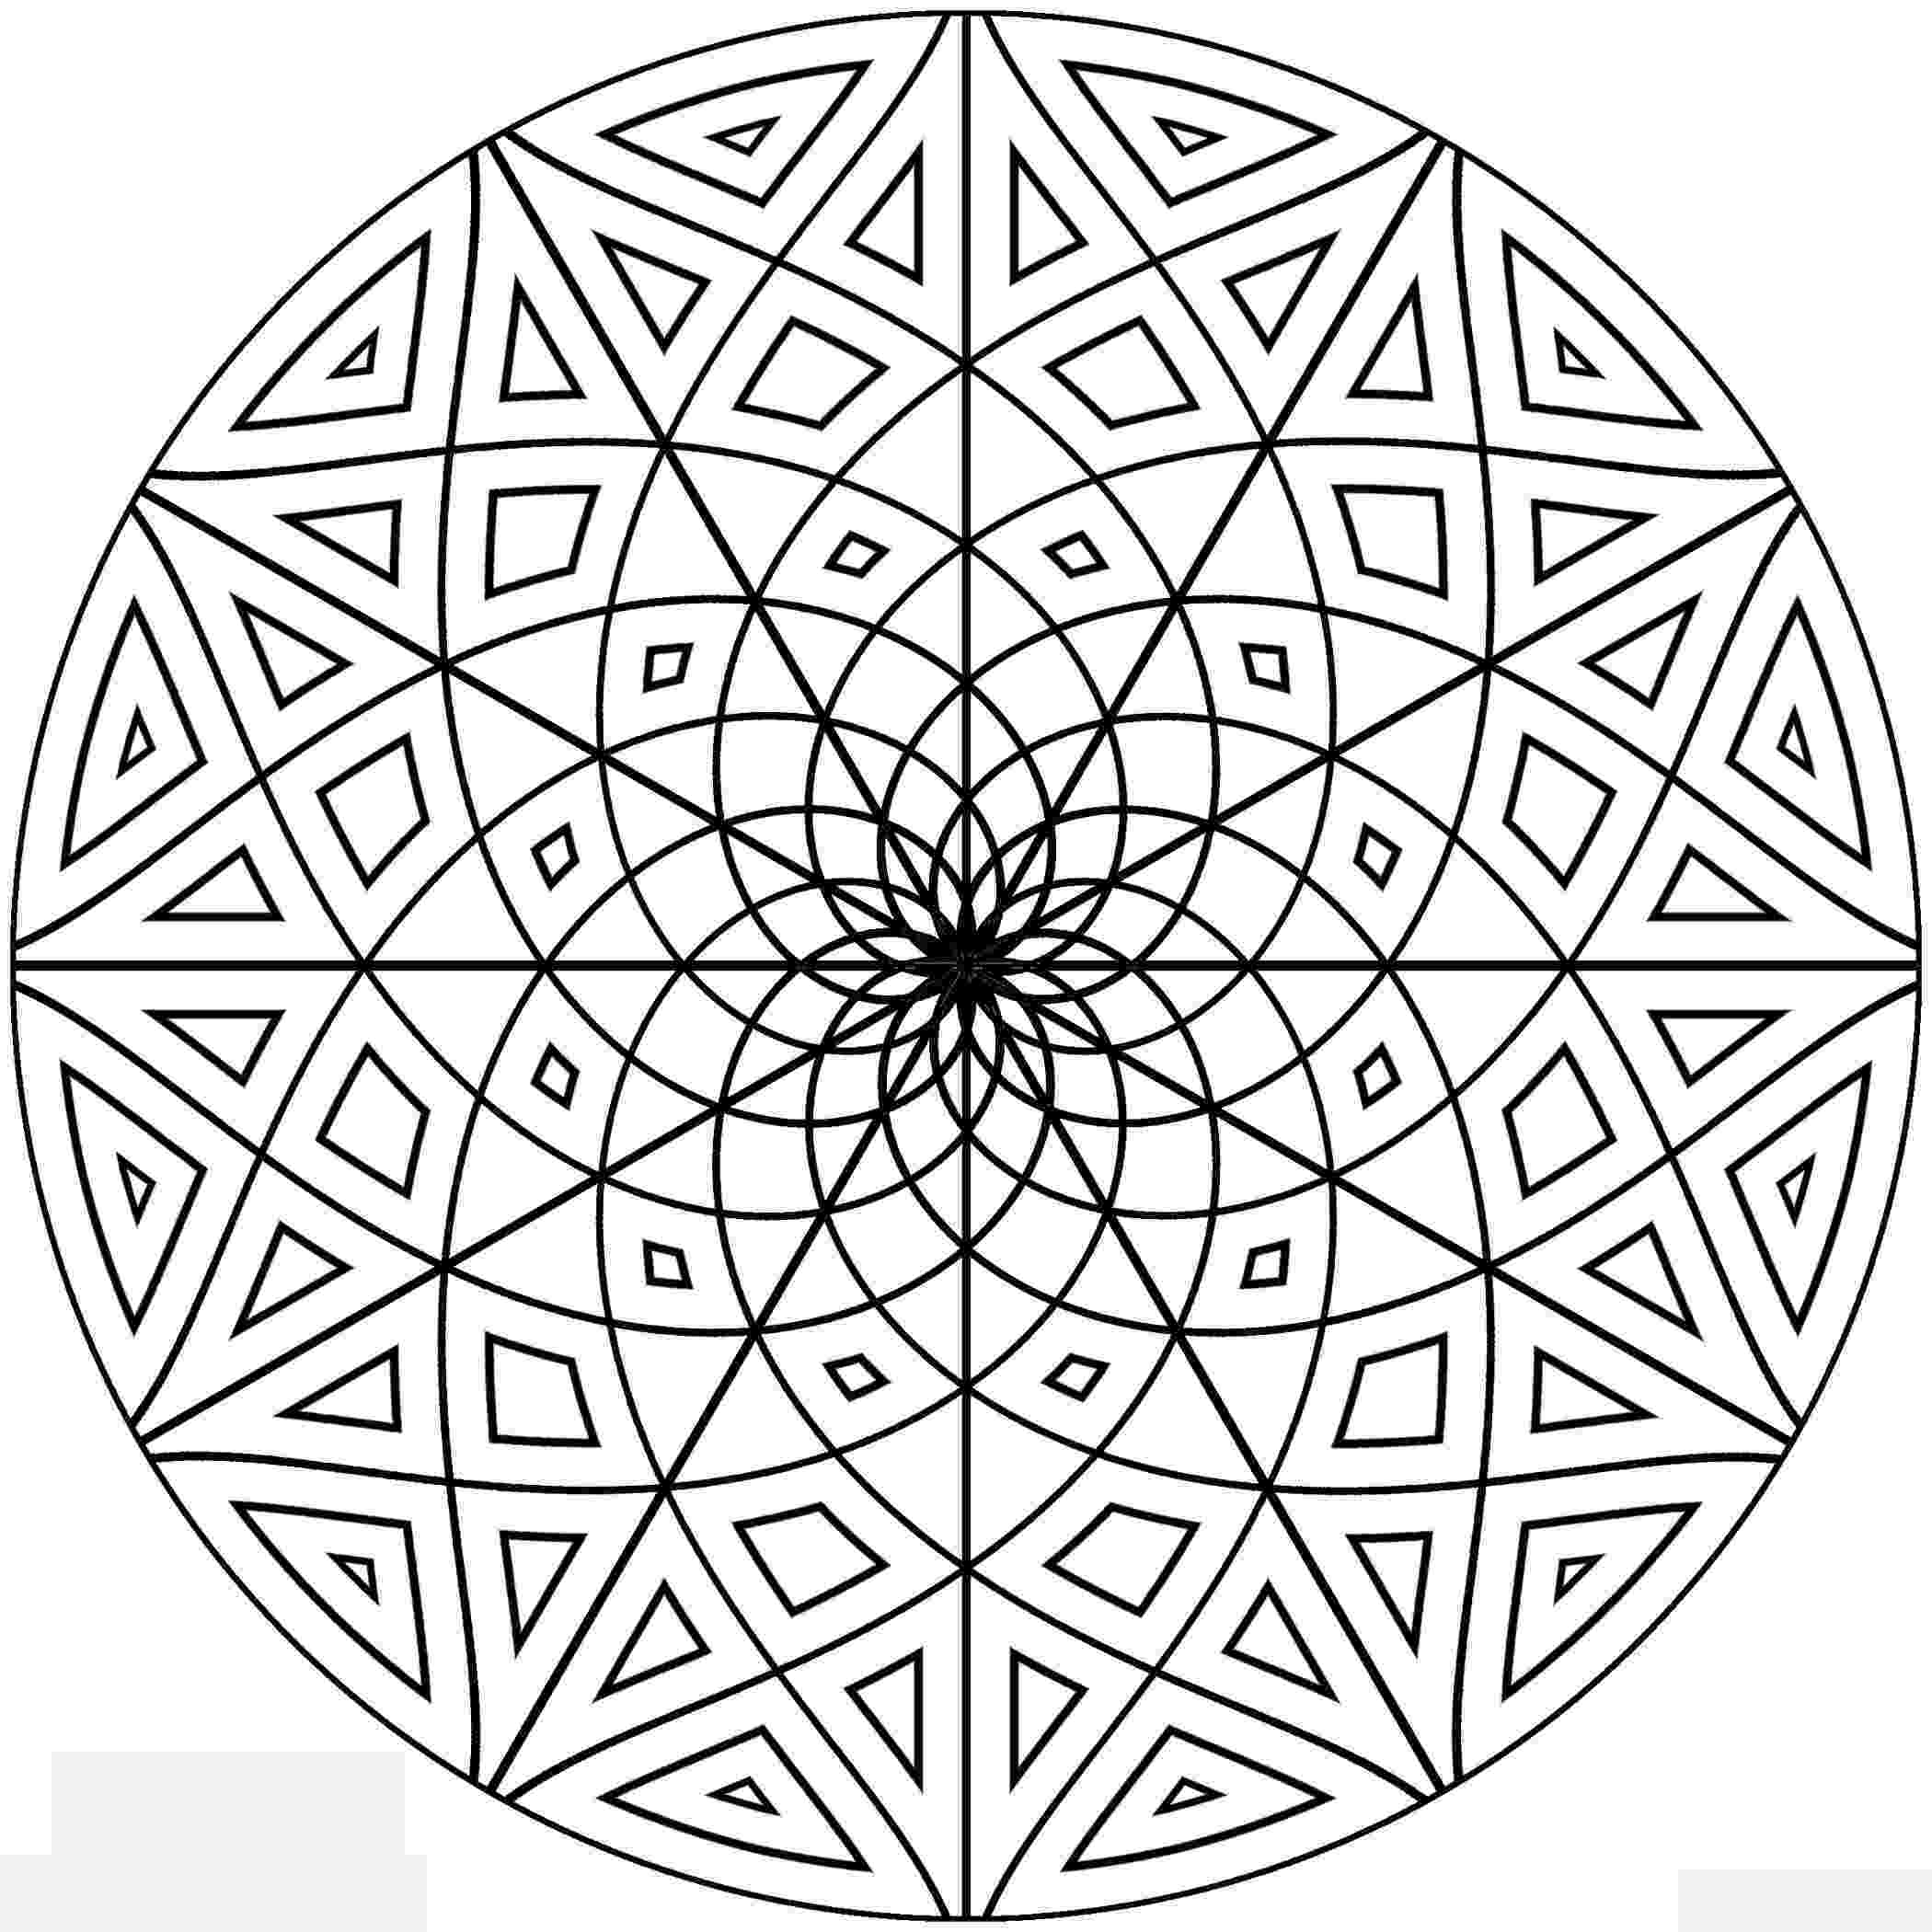 printable coloring pages pattern free printable geometric coloring pages for adults coloring printable pages pattern